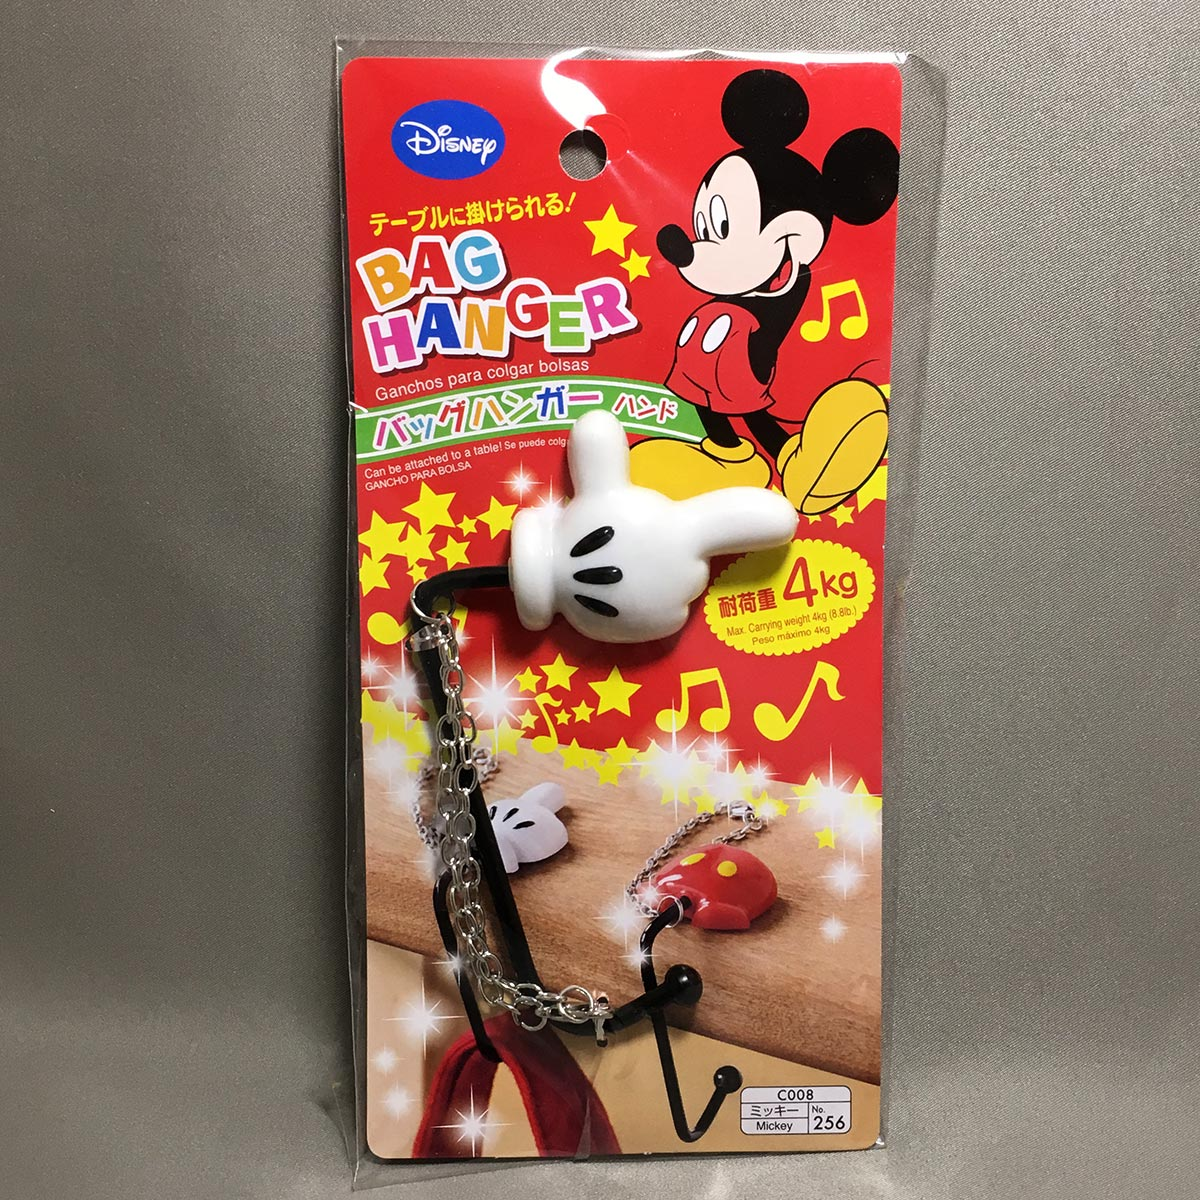 Mickey Bag Hanger - Front packaging